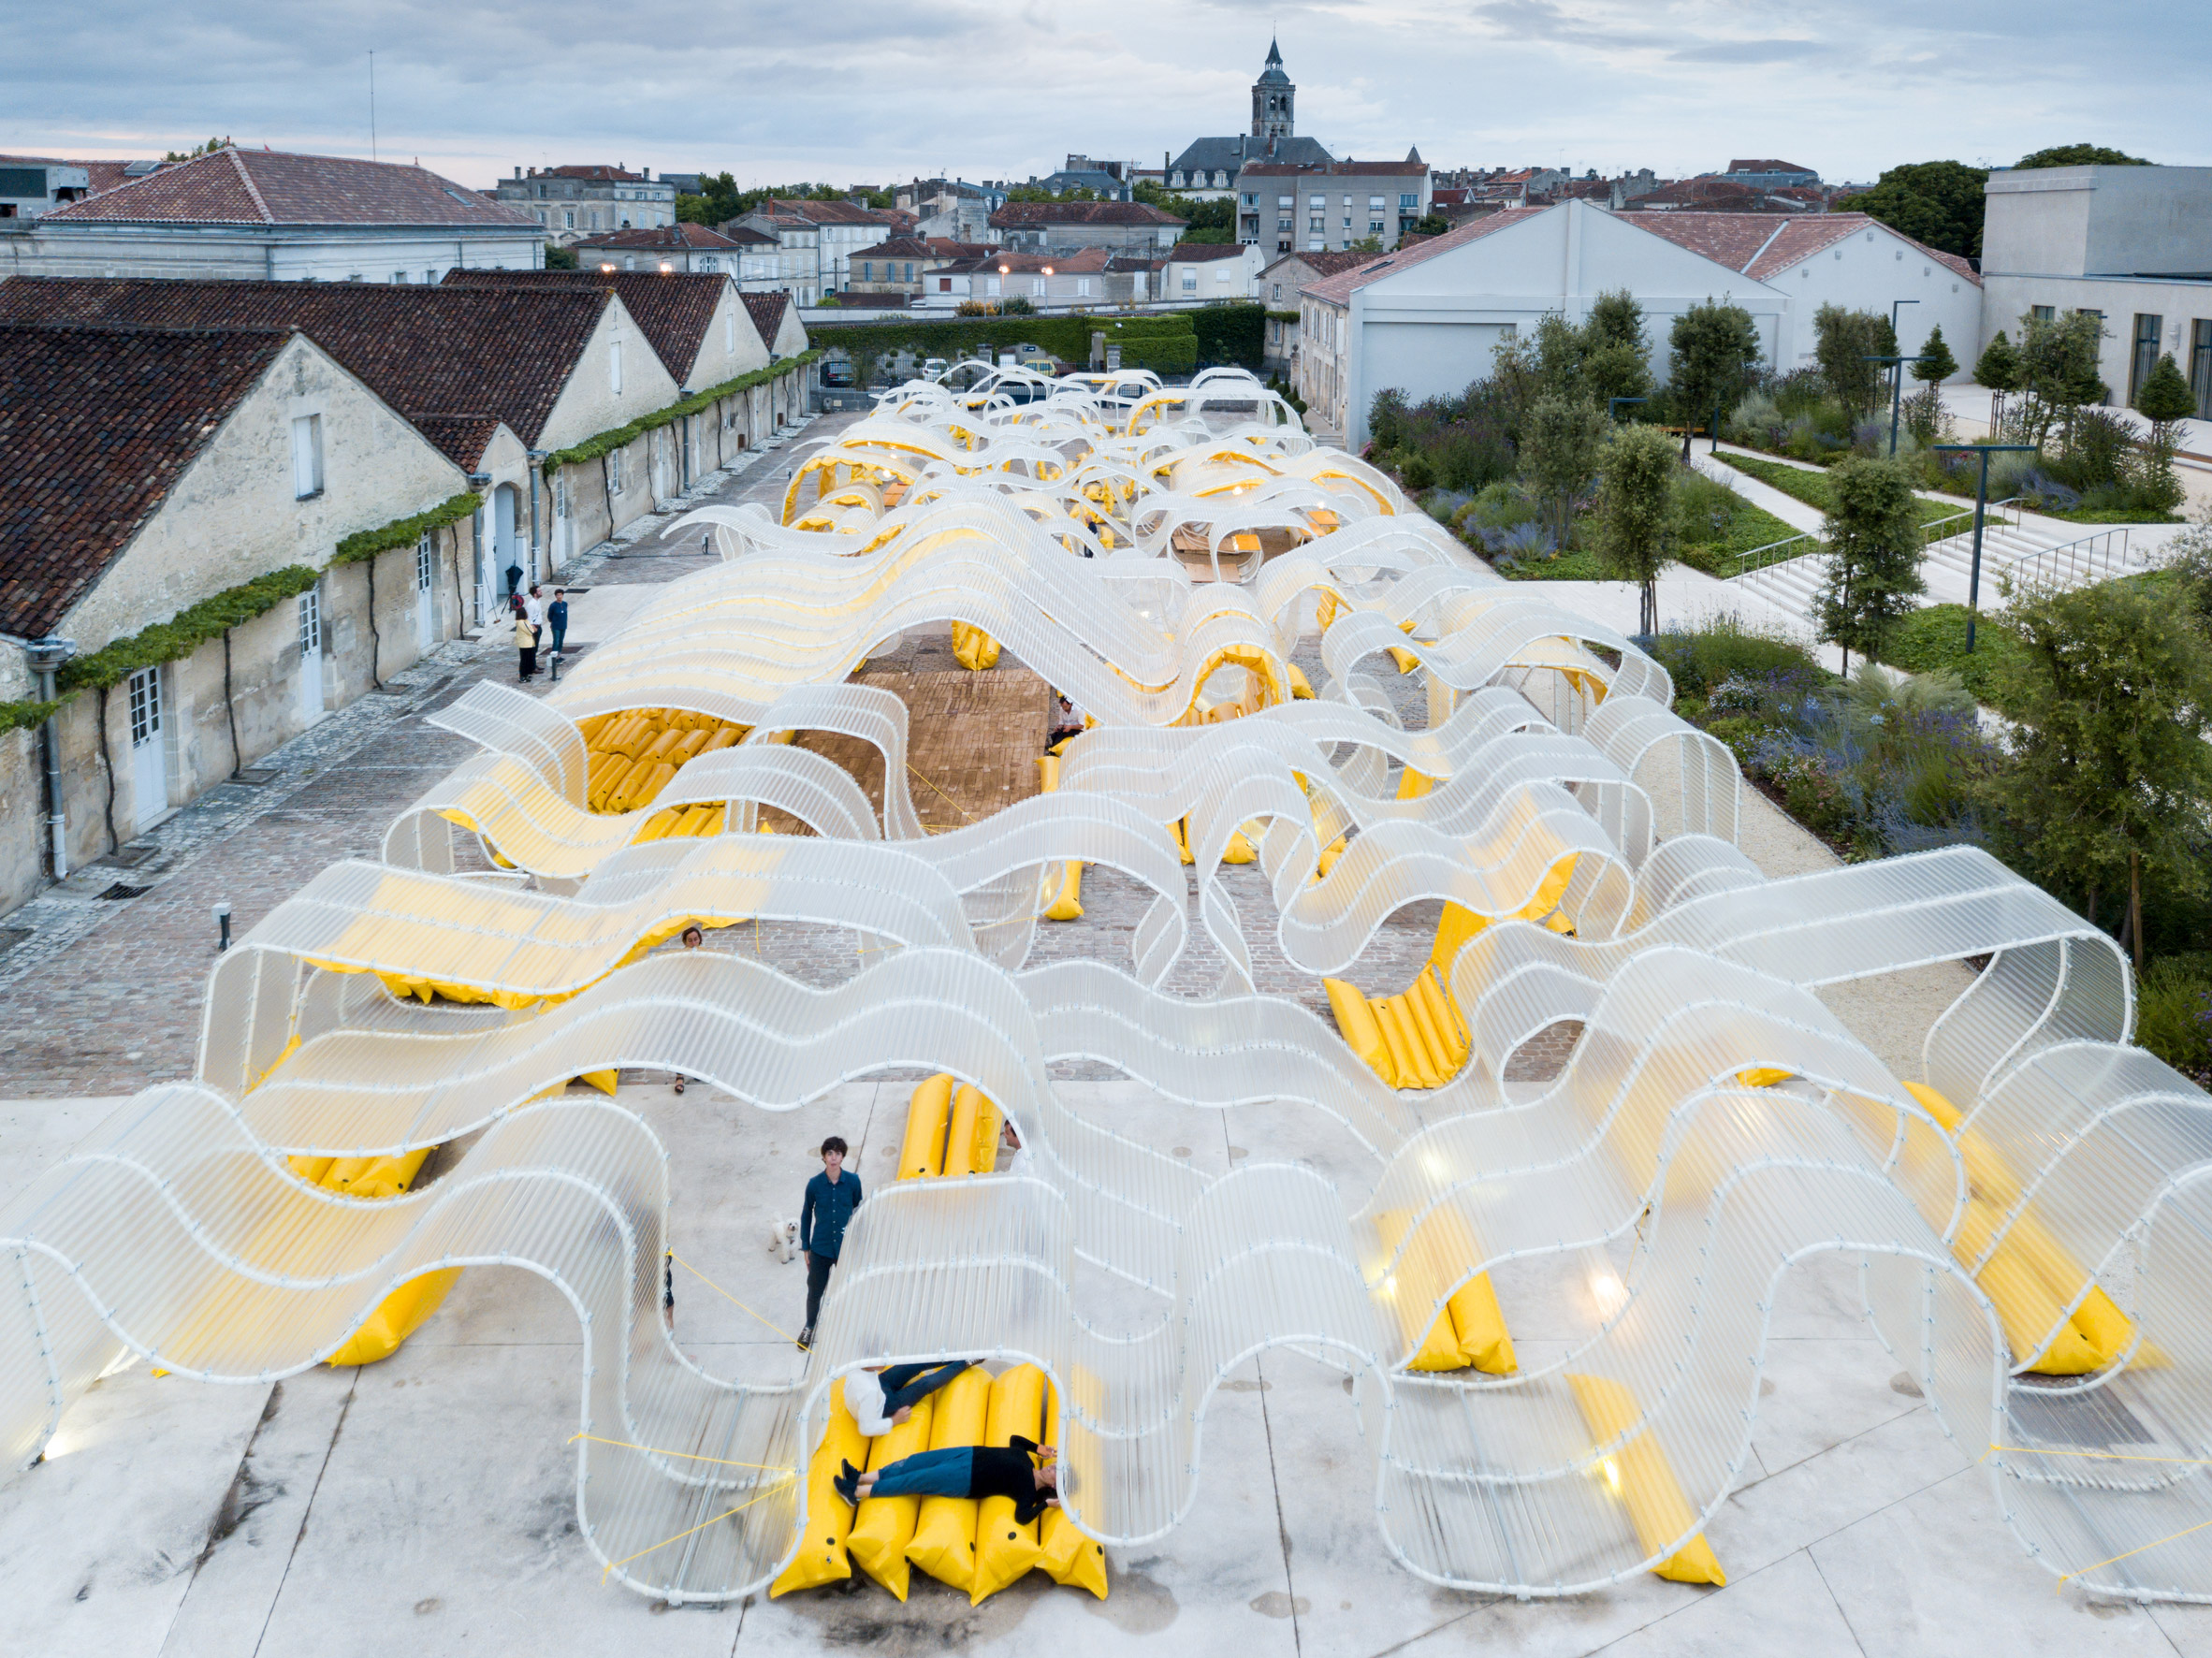 SelgasCano creates undulating pavilion from sheets of corrugated plastic in Cognac courtyard